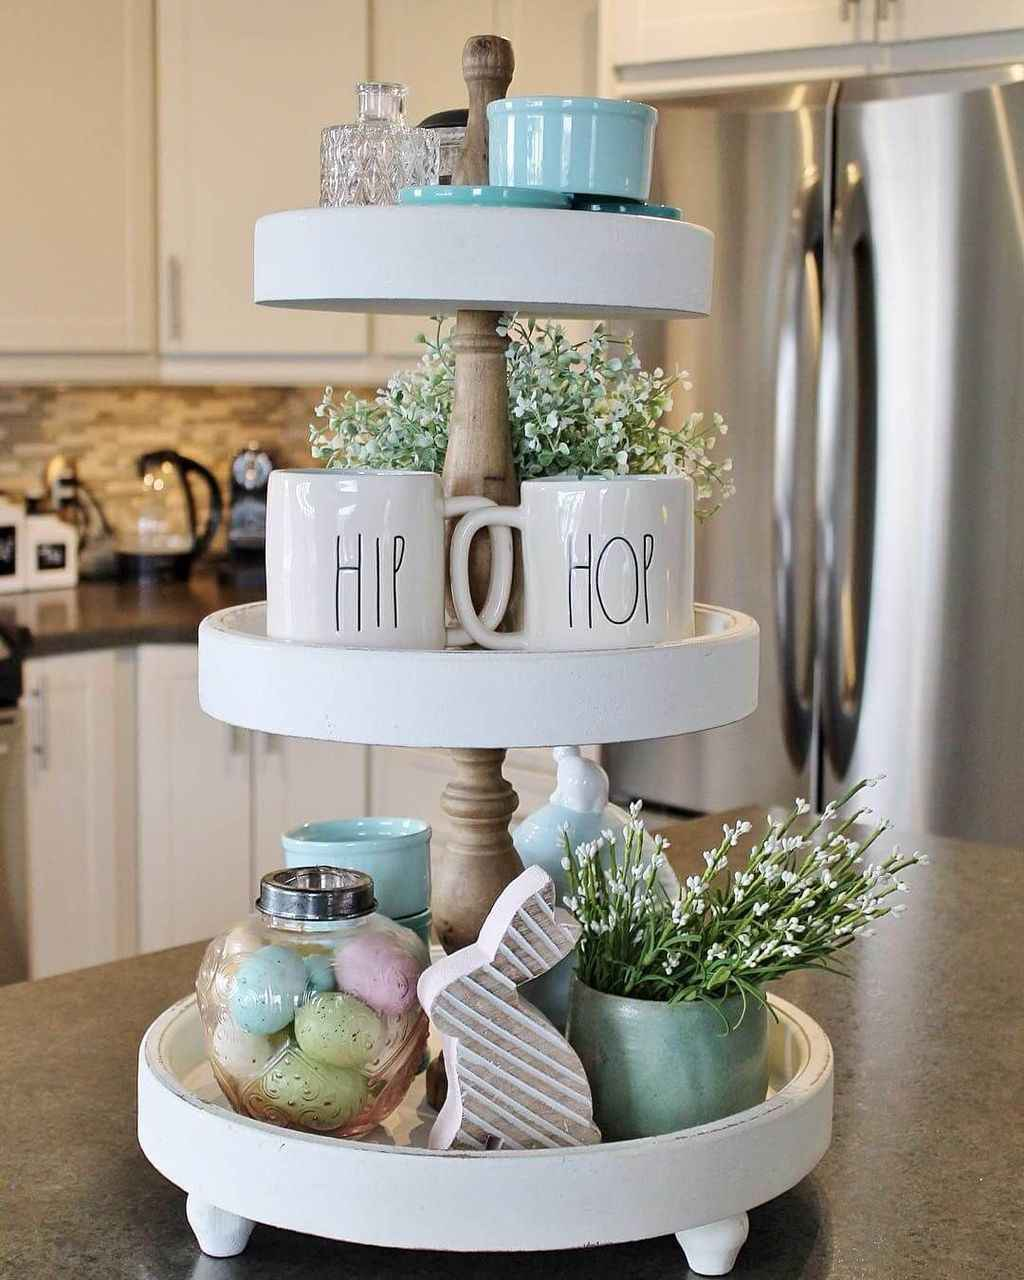 HIP HOP FARMHOUSE DECOR